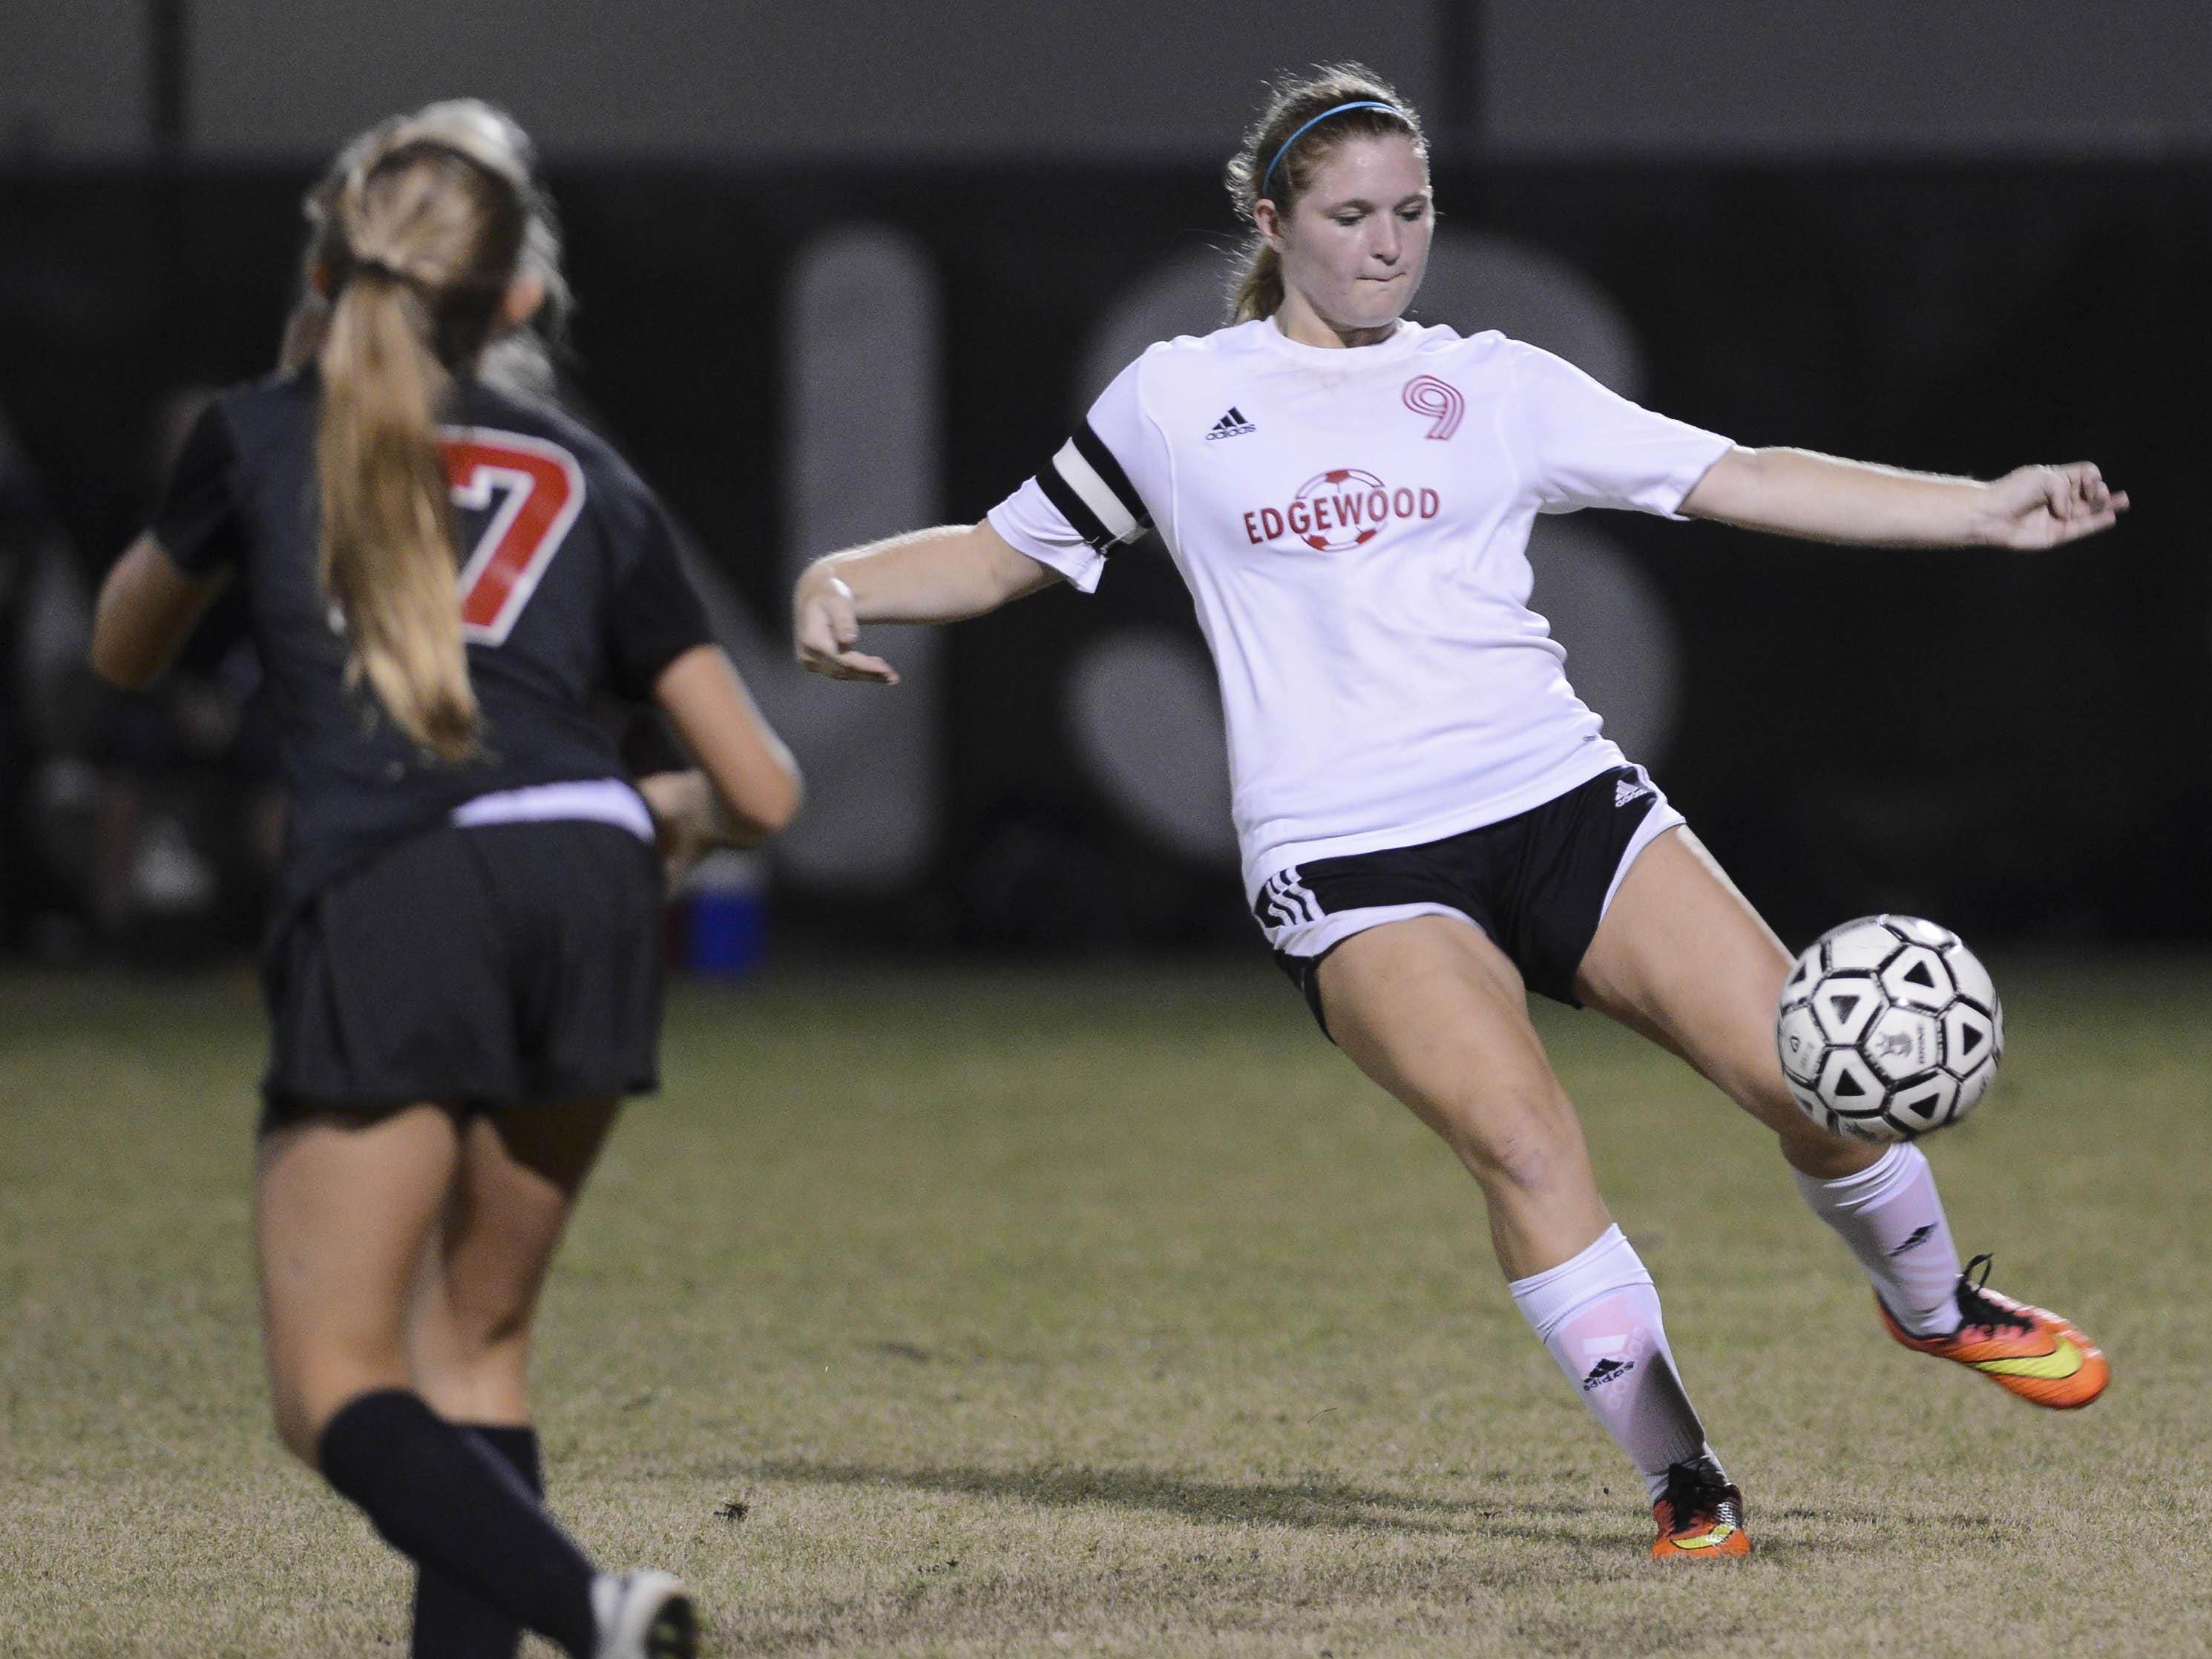 Edgewood's Meagan King sends the ball downfield during Wednesday's game against Satellite.